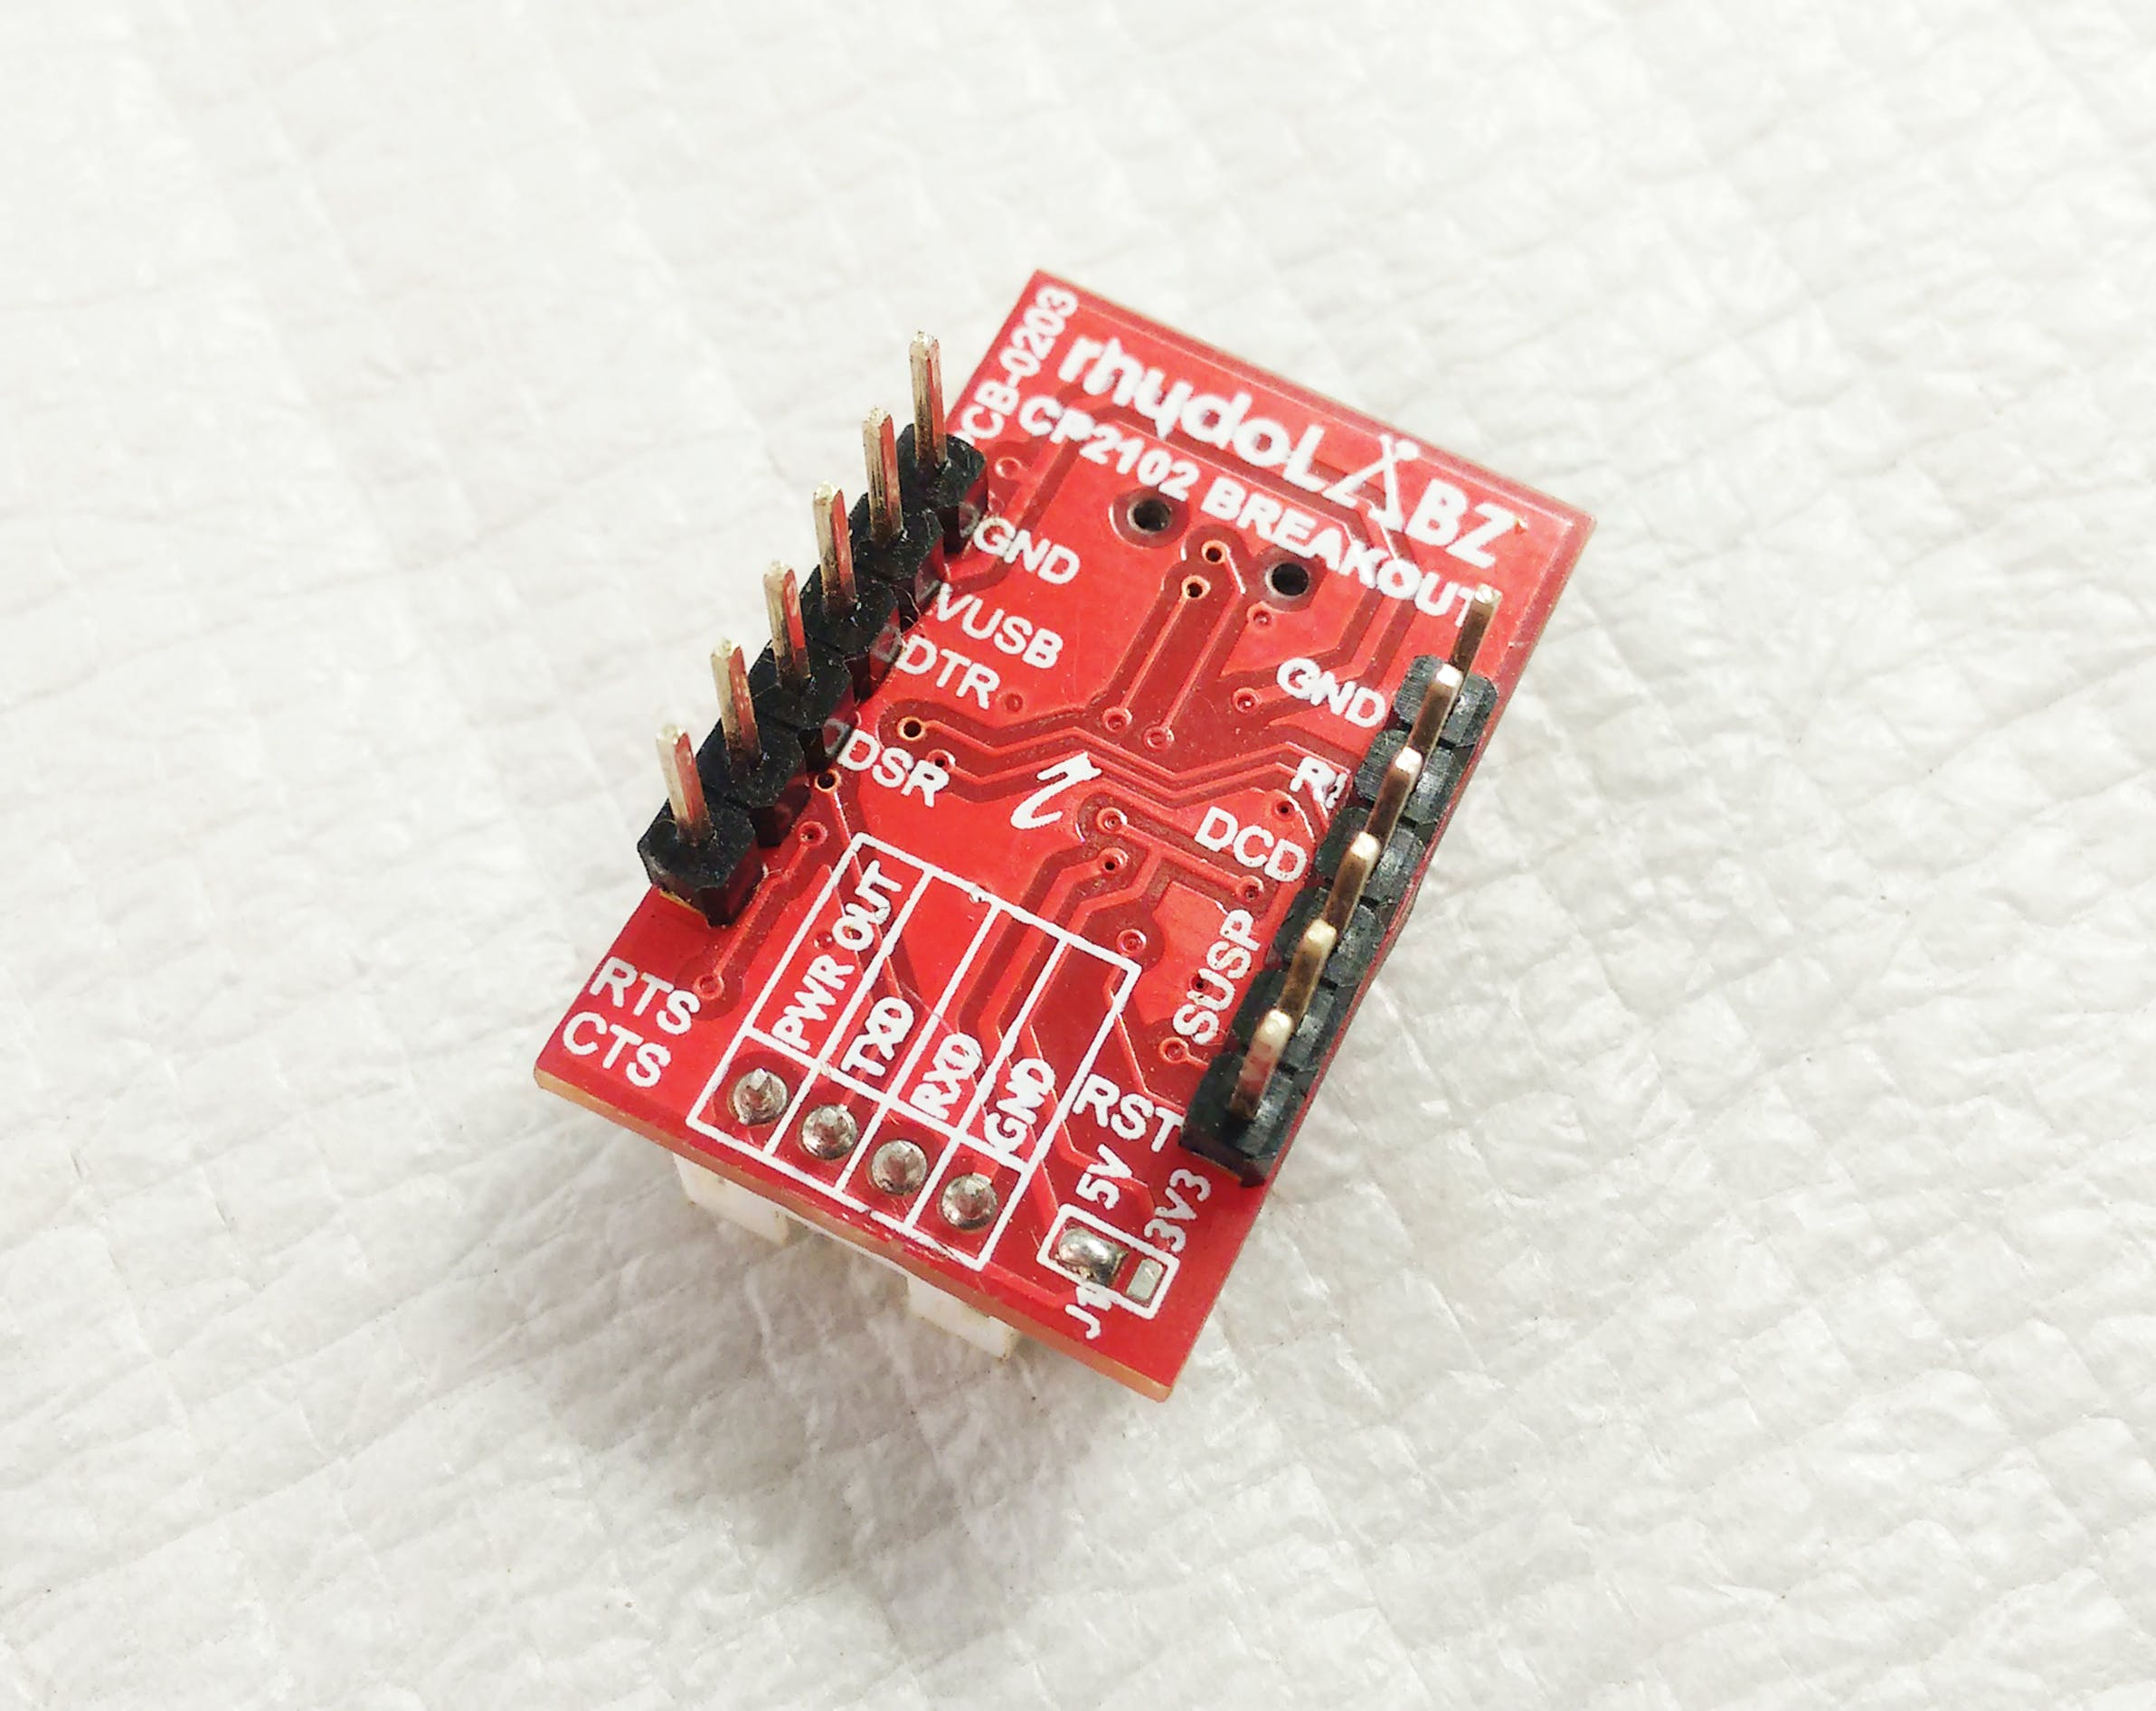 CP21012 USB-to-Serial Breakout from rhydoLabz